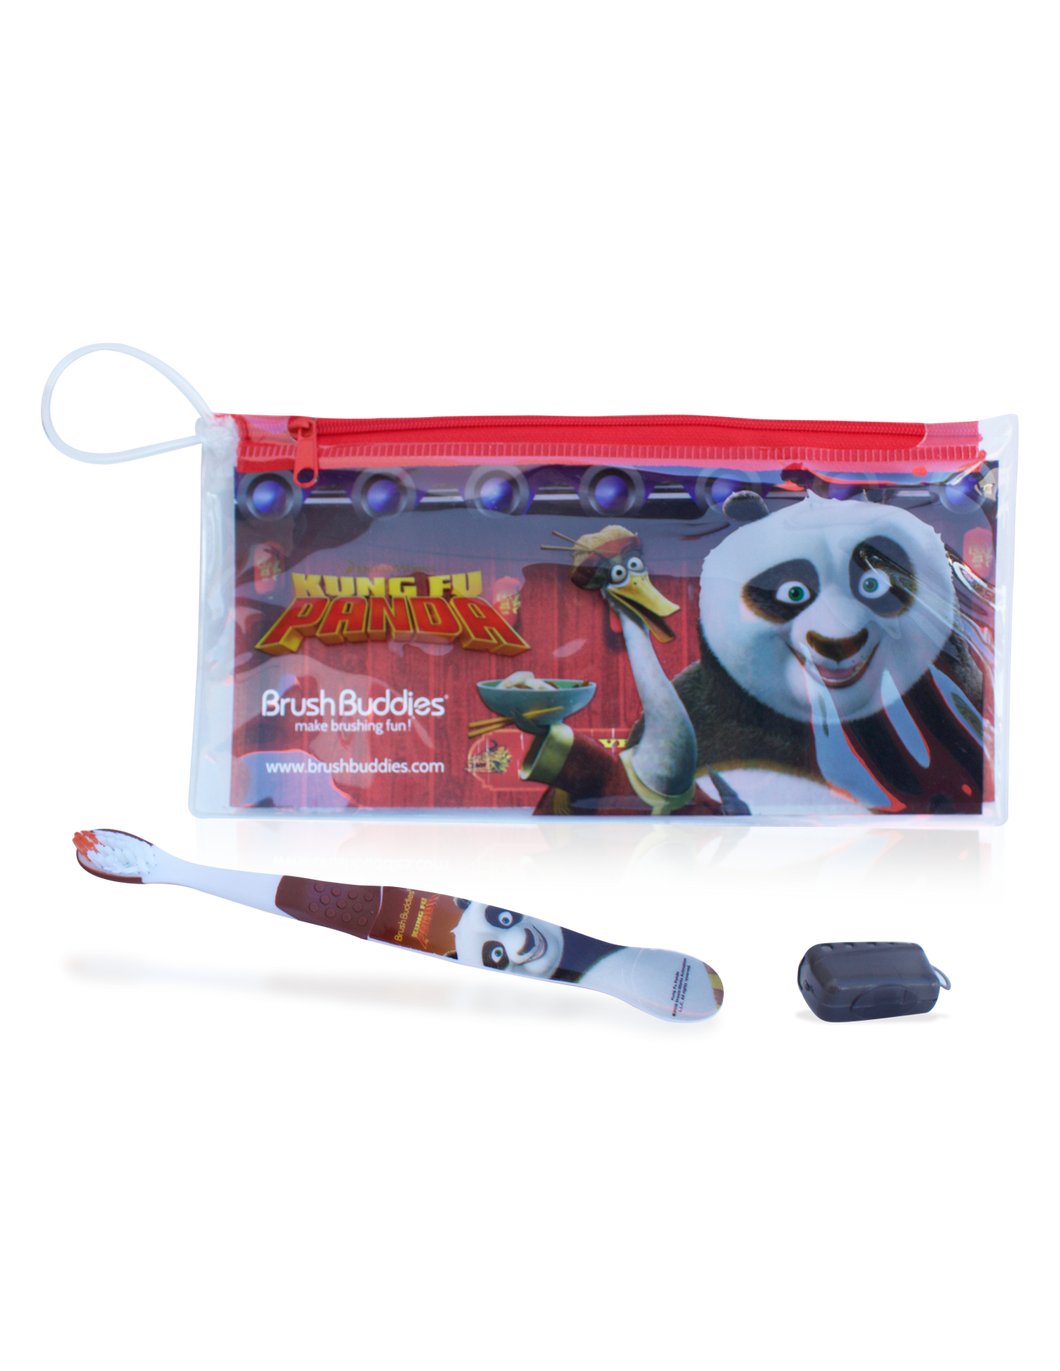 Brush Buddies Kung Fu Panda Eco Travel Kit